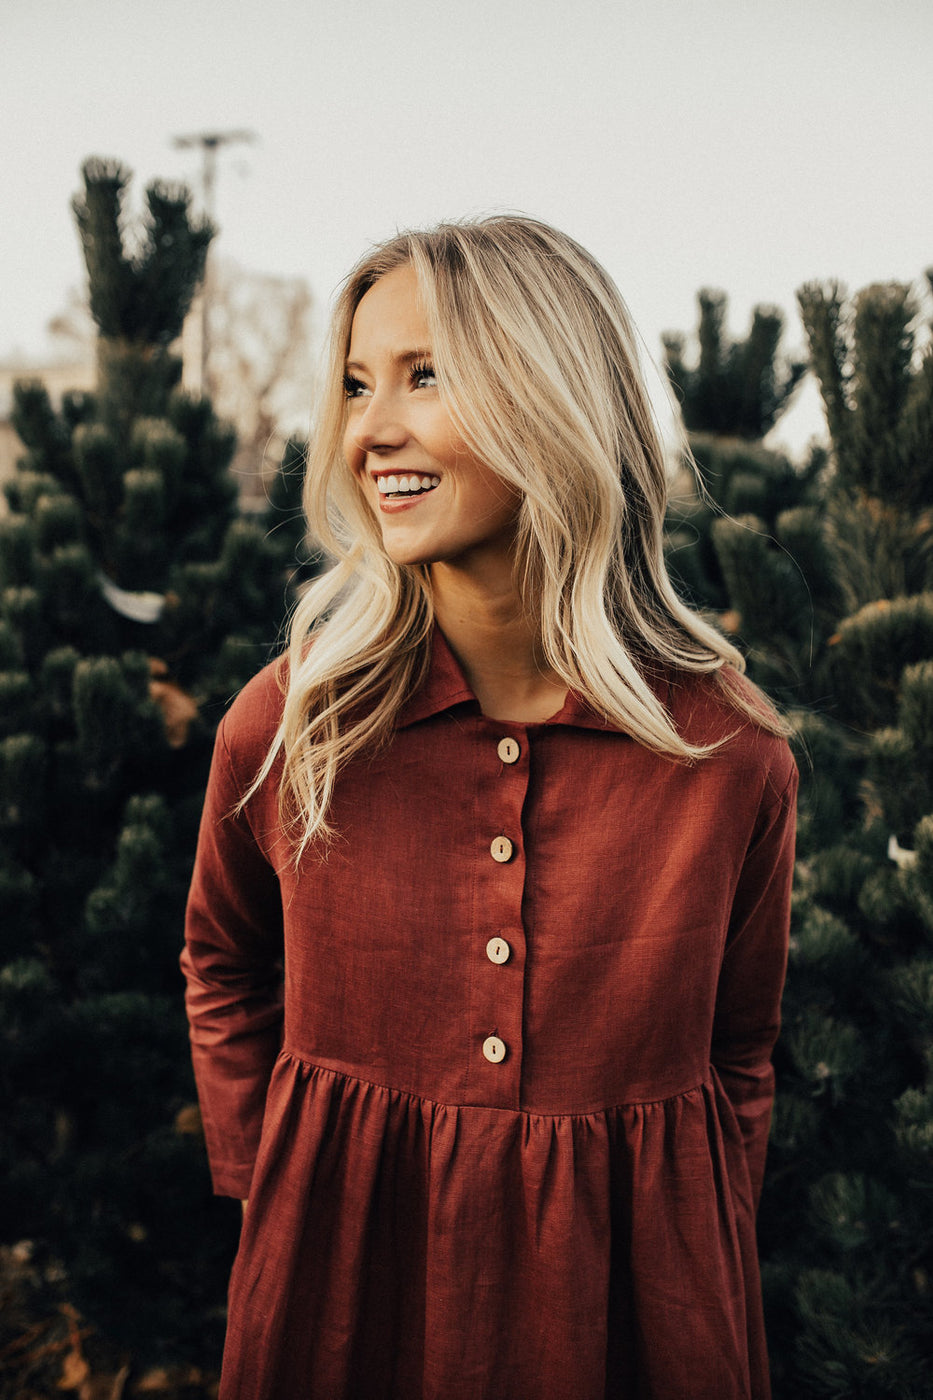 The Delacour Dress in Burgundy